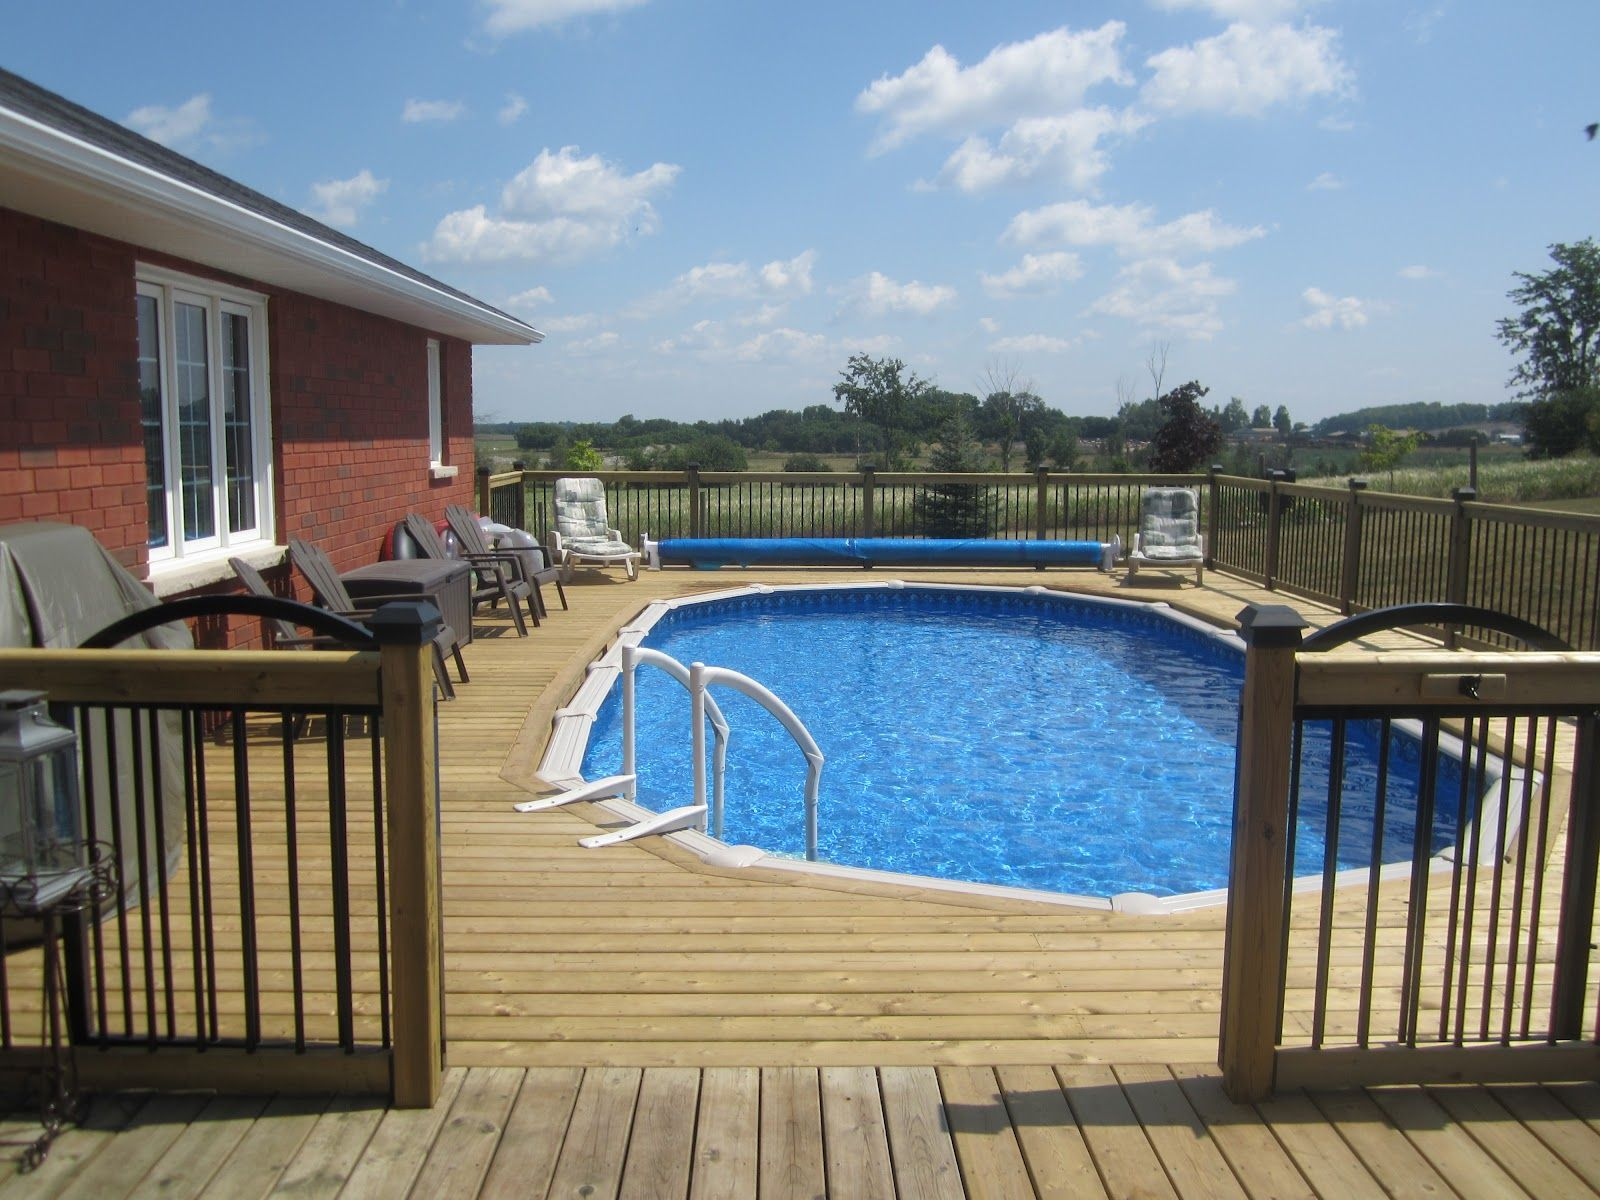 Above Ground Pool Decks From House decks built off back of house with above ground pool - google